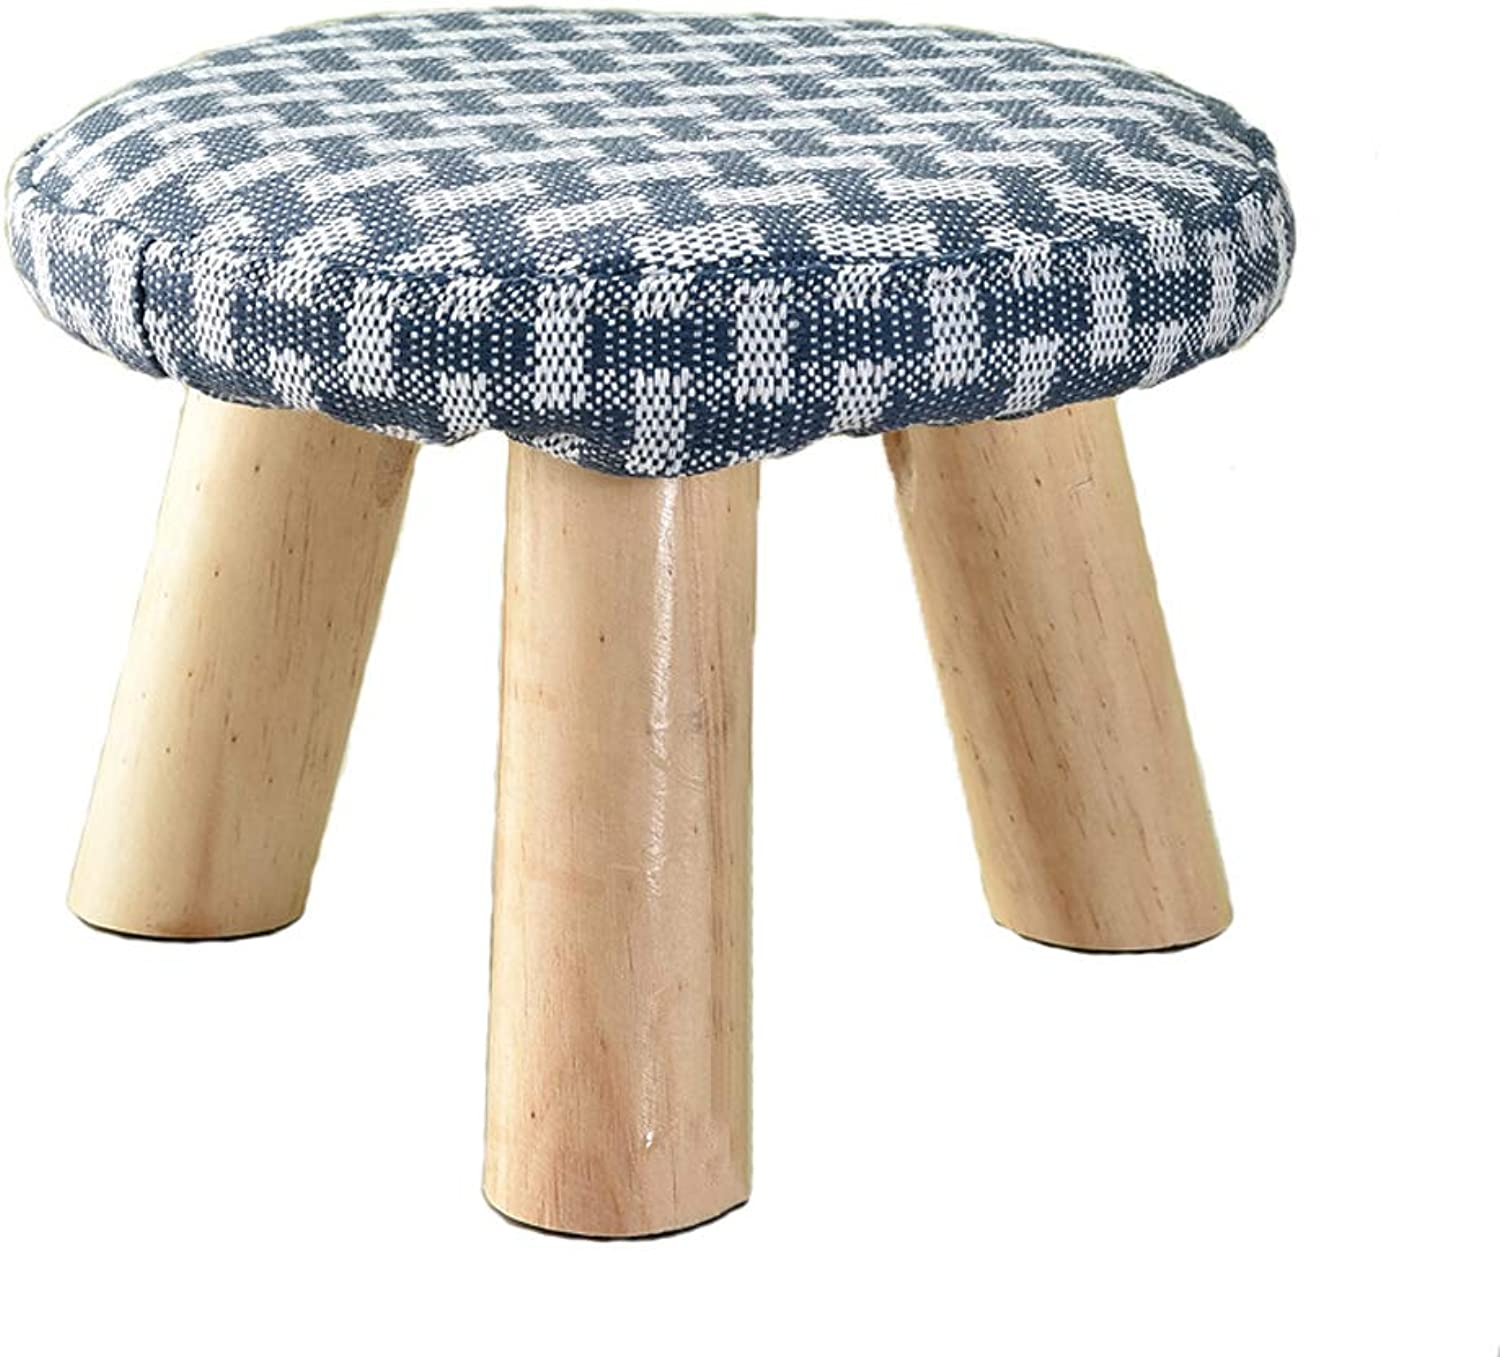 HLJ Creative Adult Small Bench Modern Minimalist Small Round Stool Personality Fashion Home Small Bench